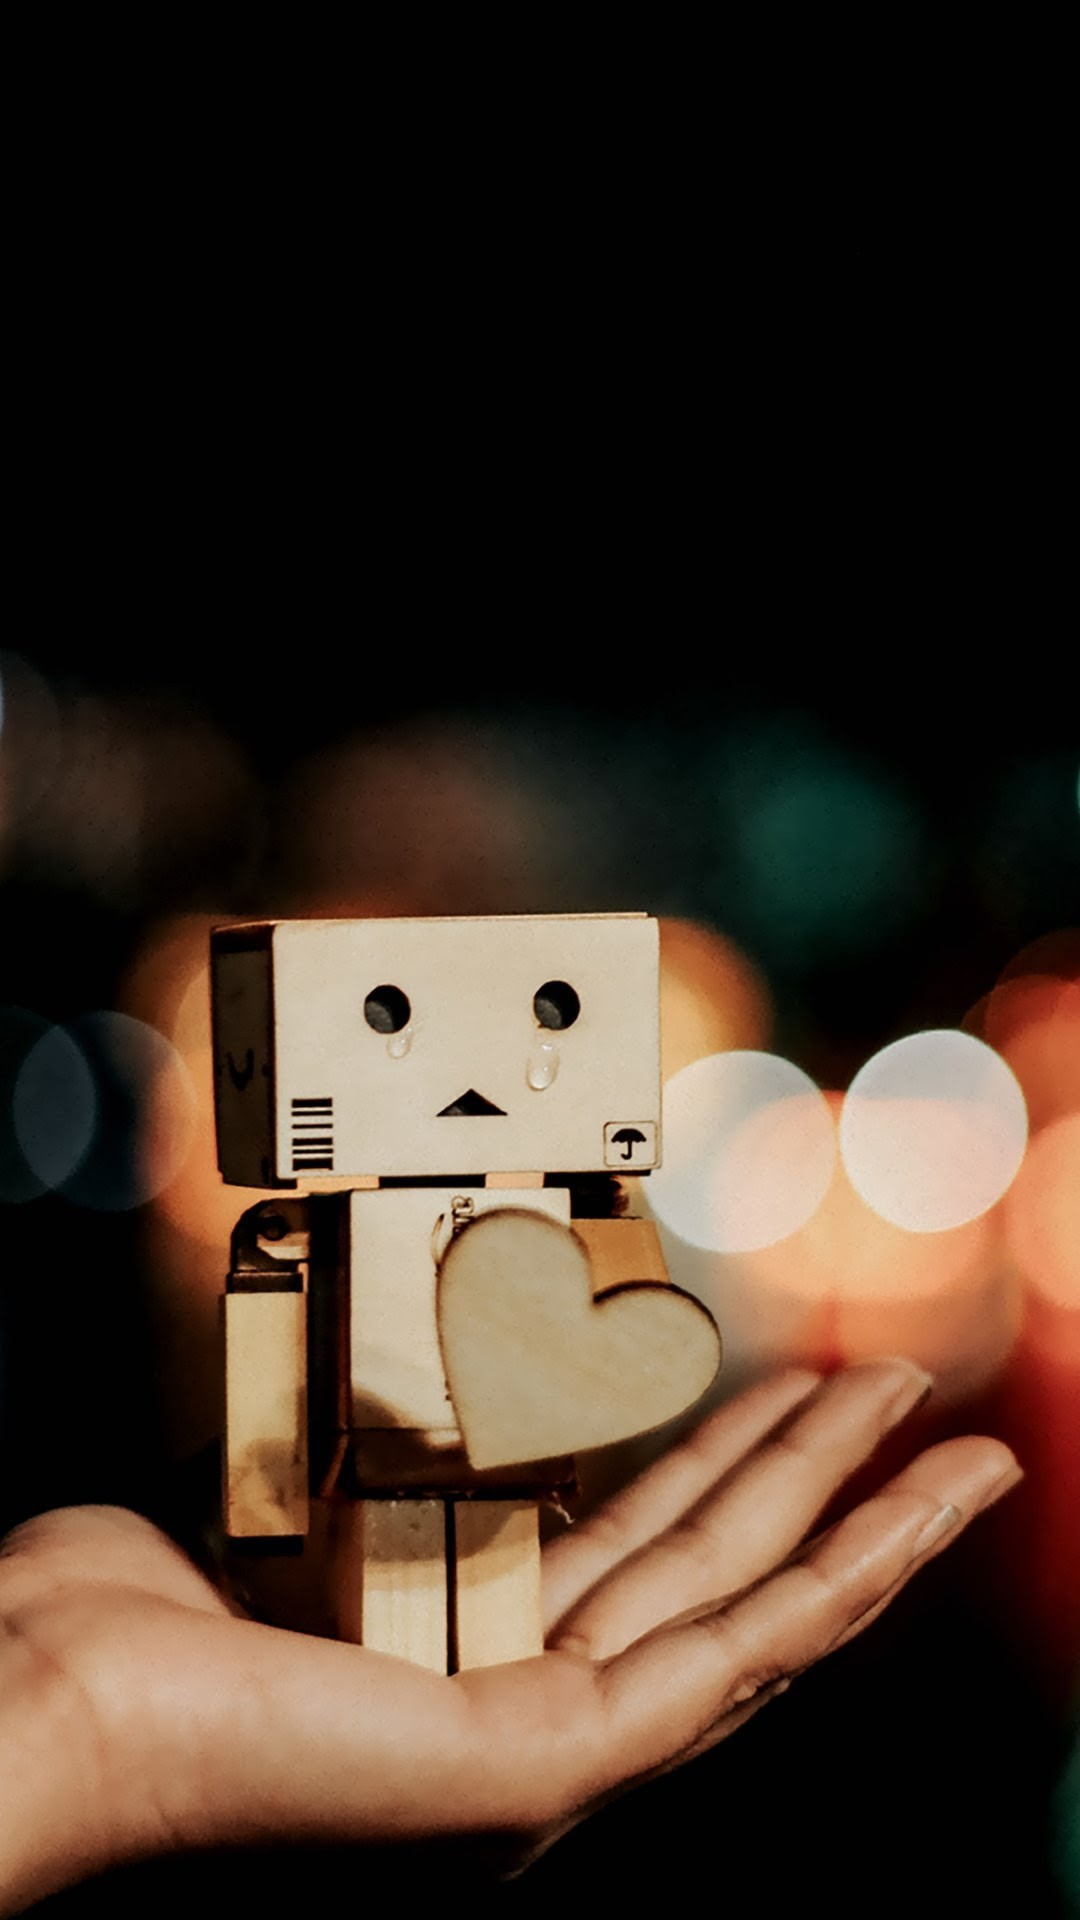 Cute Robot Love Wallpaper Cute Robot Wallpaper (...